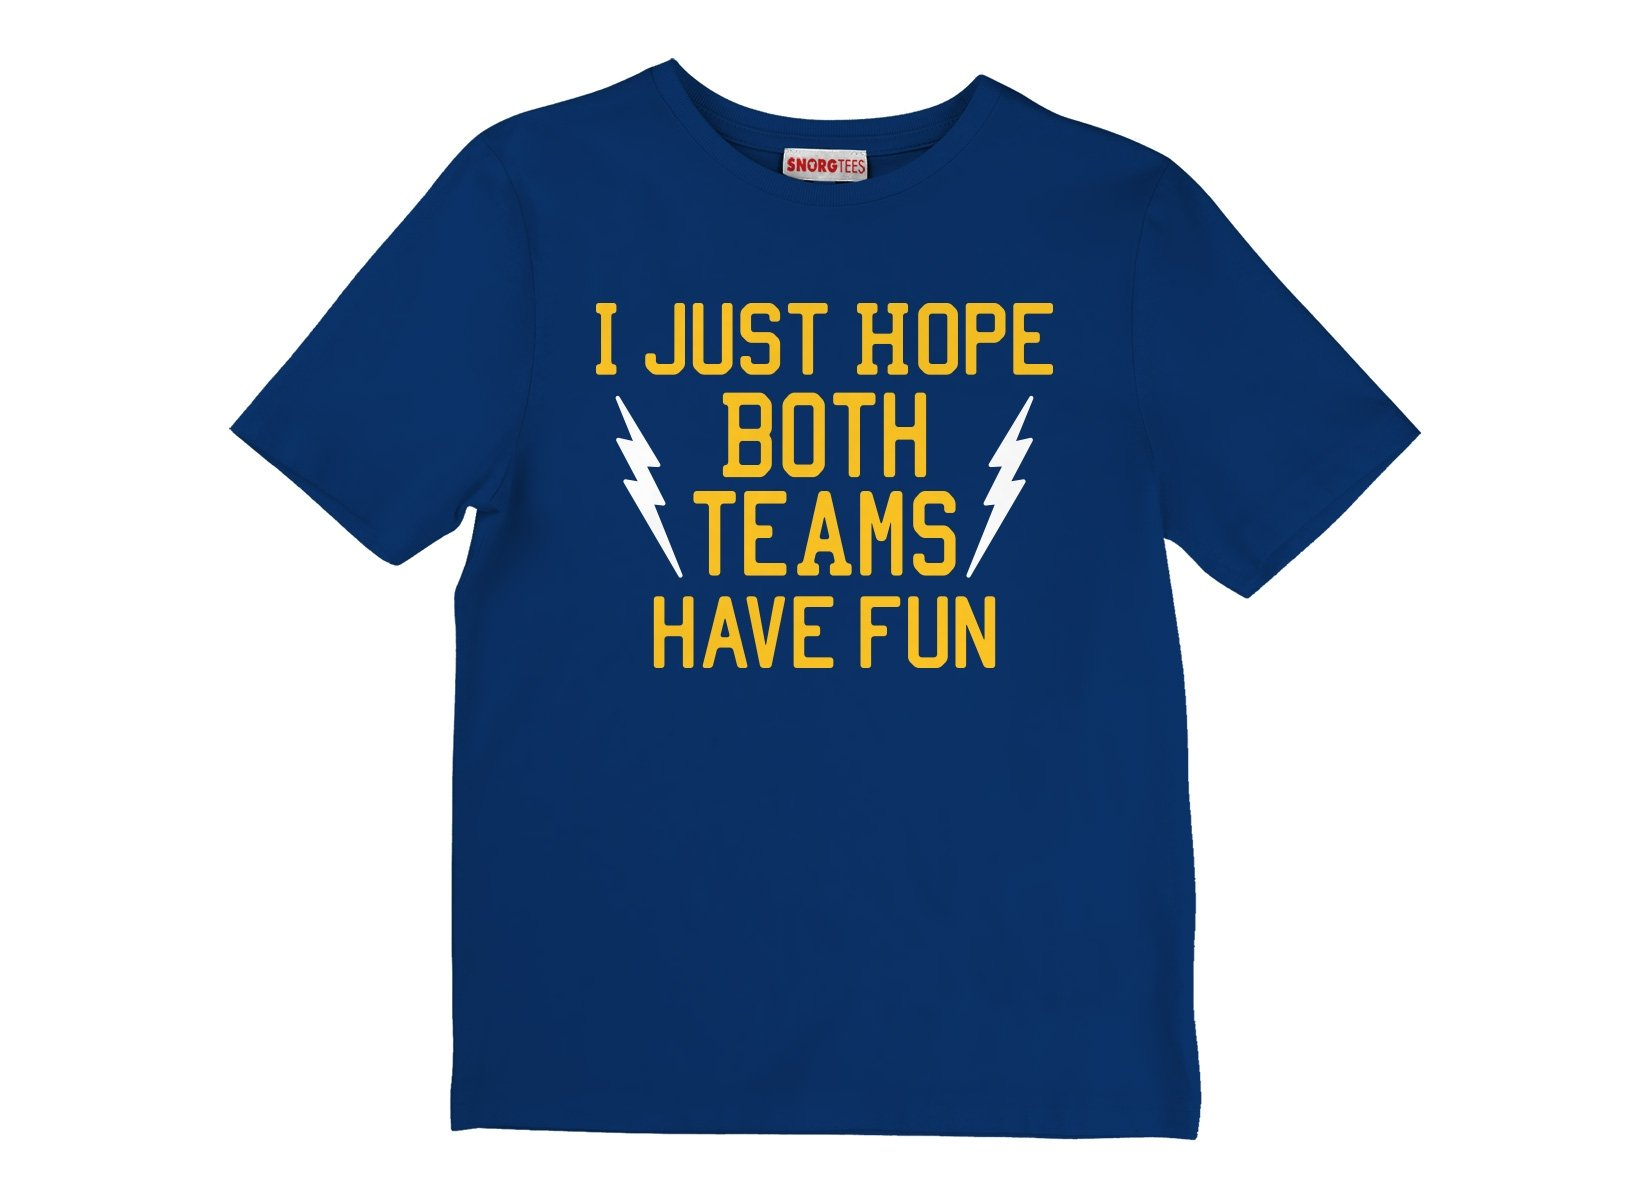 I Just Hope Both Teams Have Fun on Kids T-Shirt